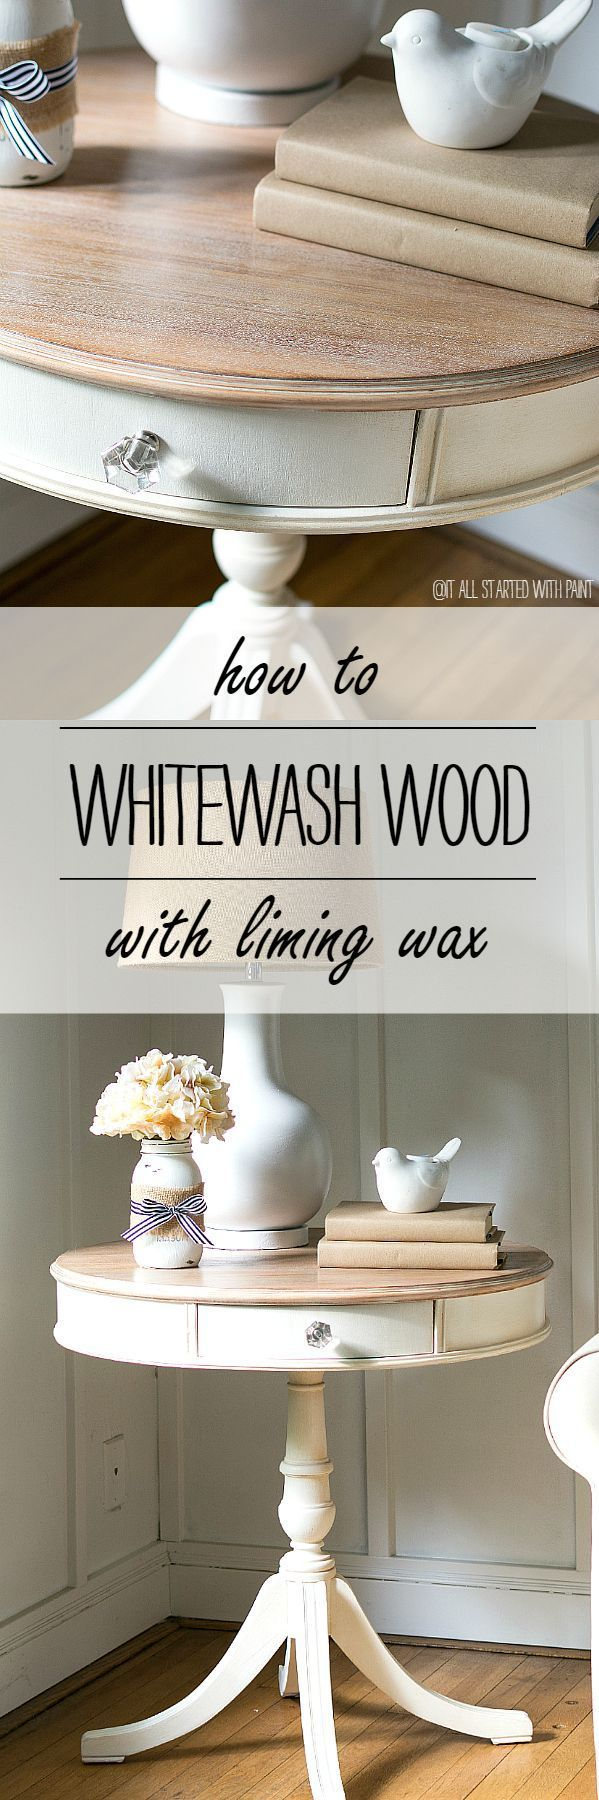 Owen s olivia whitewashed wood technique tutorial - Best 25 Whitewash Wood Ideas On Pinterest How To Whitewash Wood Painted Accent Walls And White Washing Wood